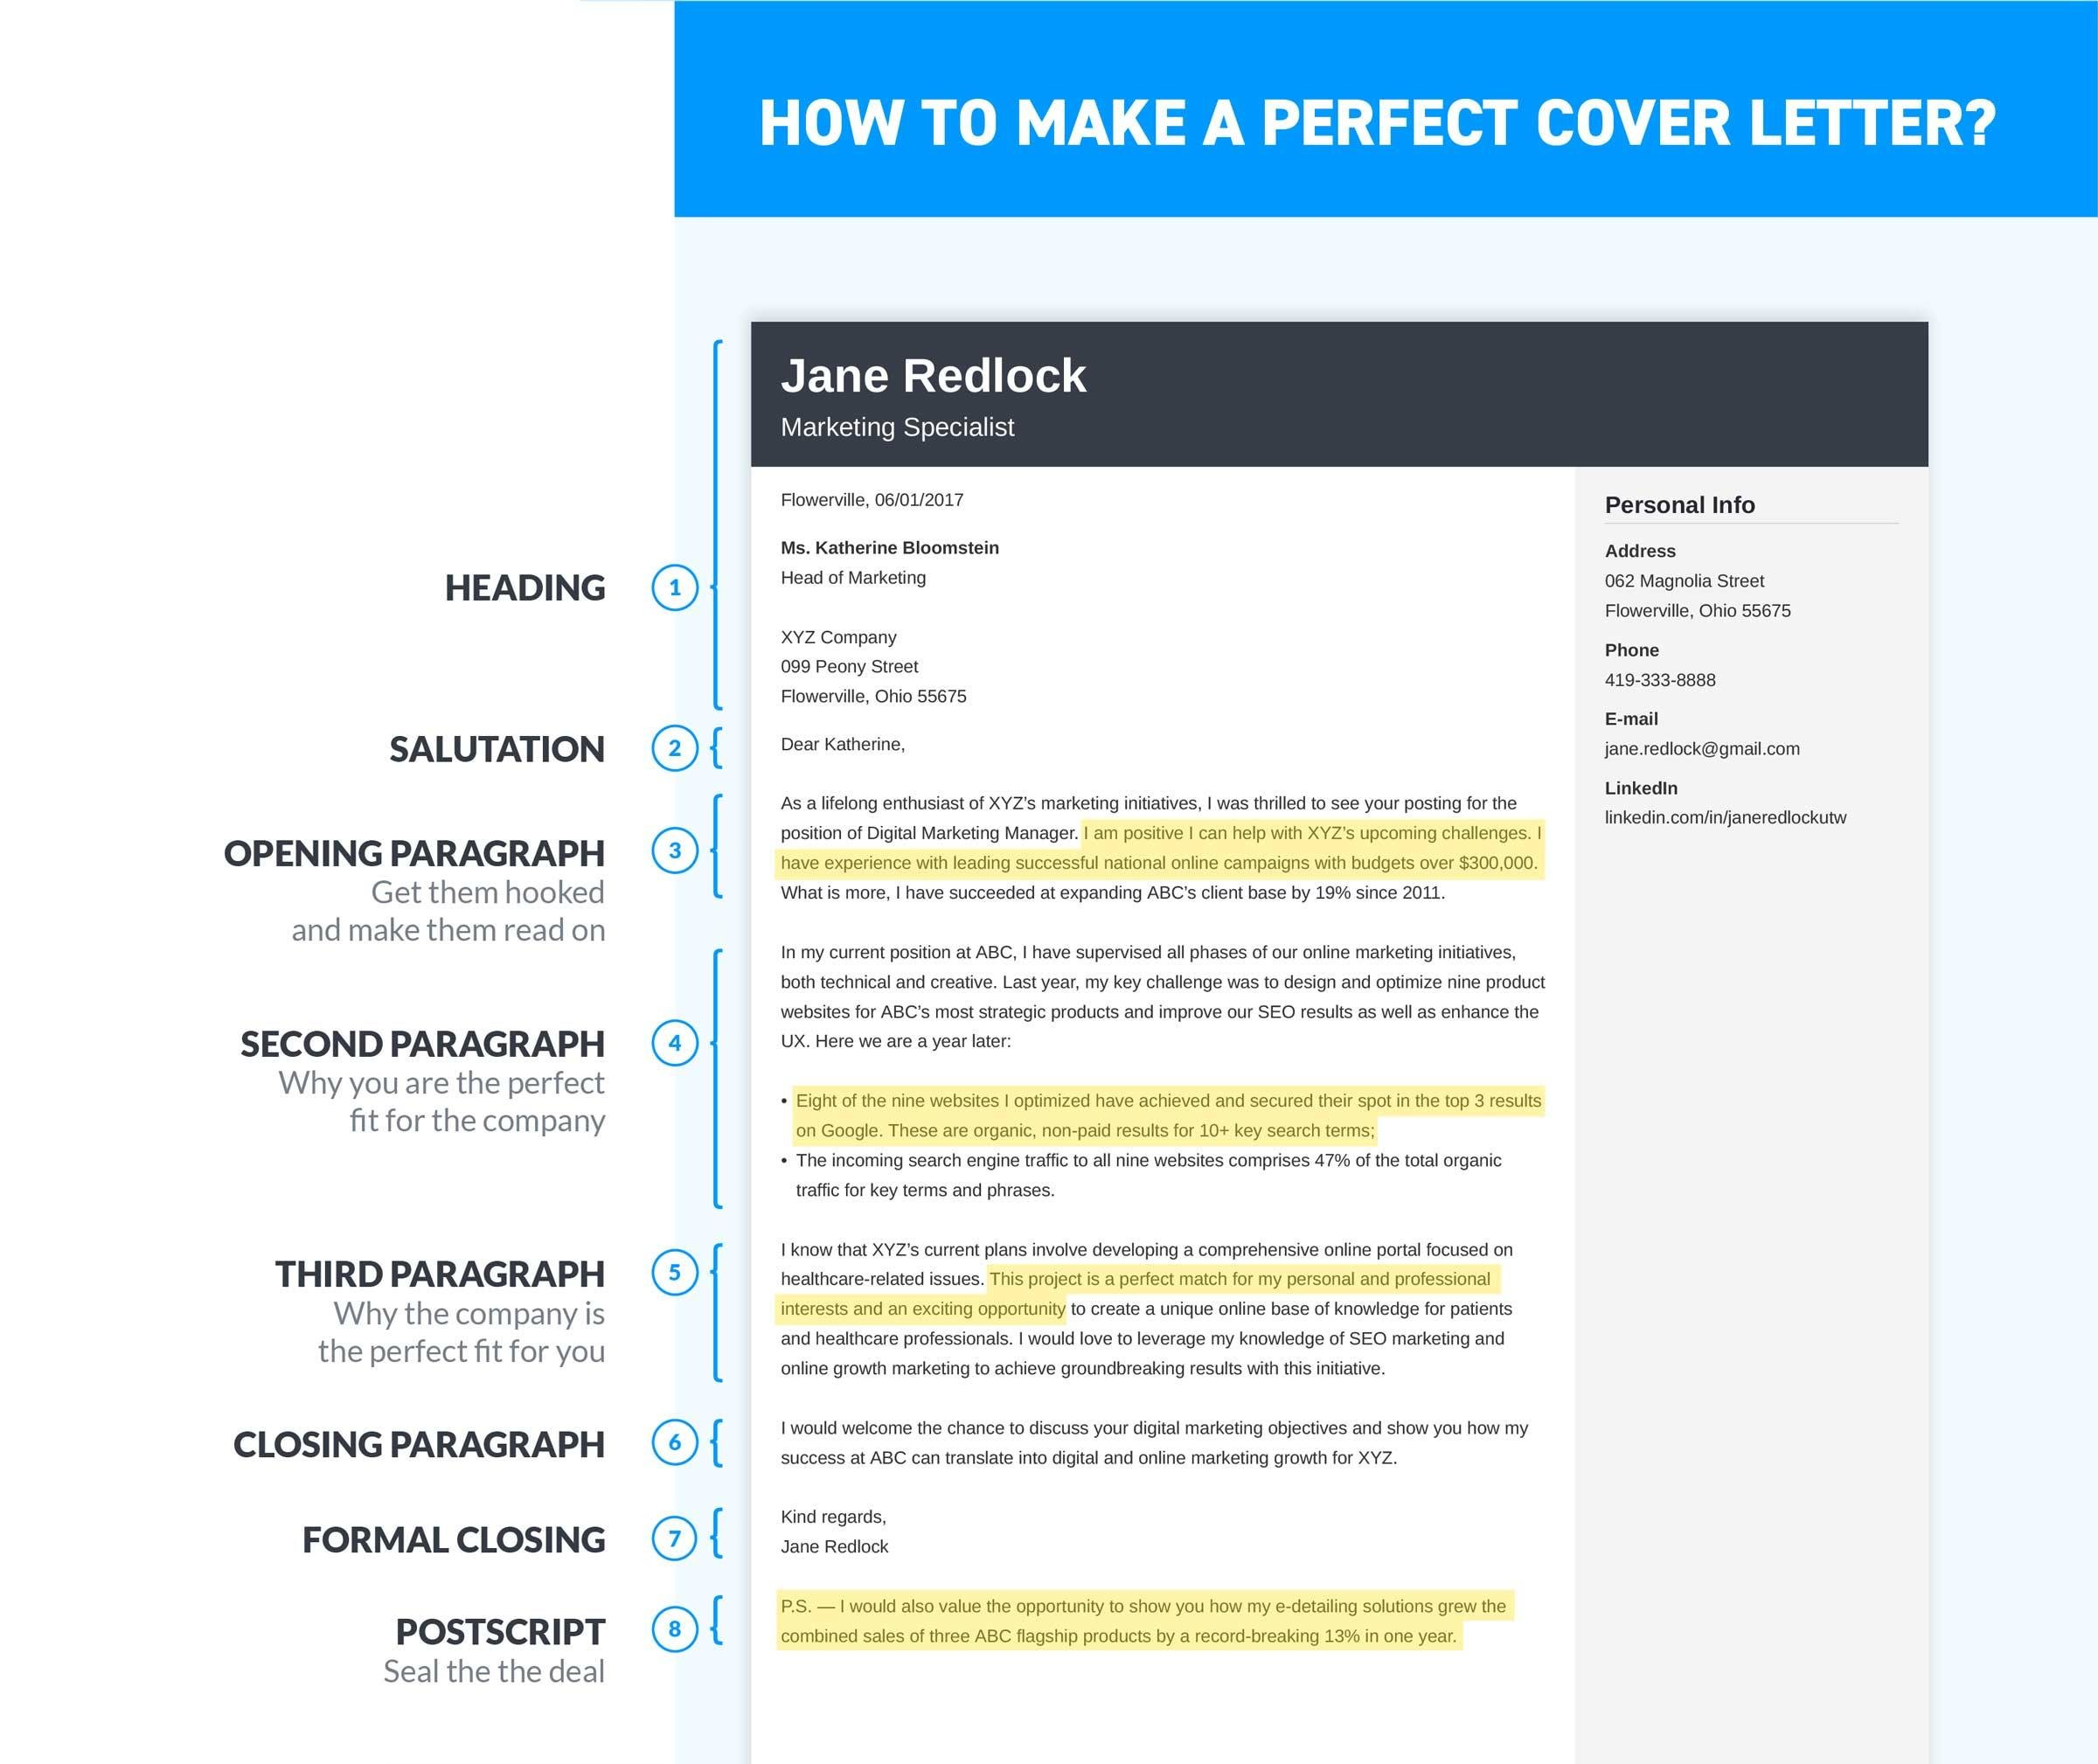 How To Make A Perfect Cover Letter Infographic  Whats A Cover Letter